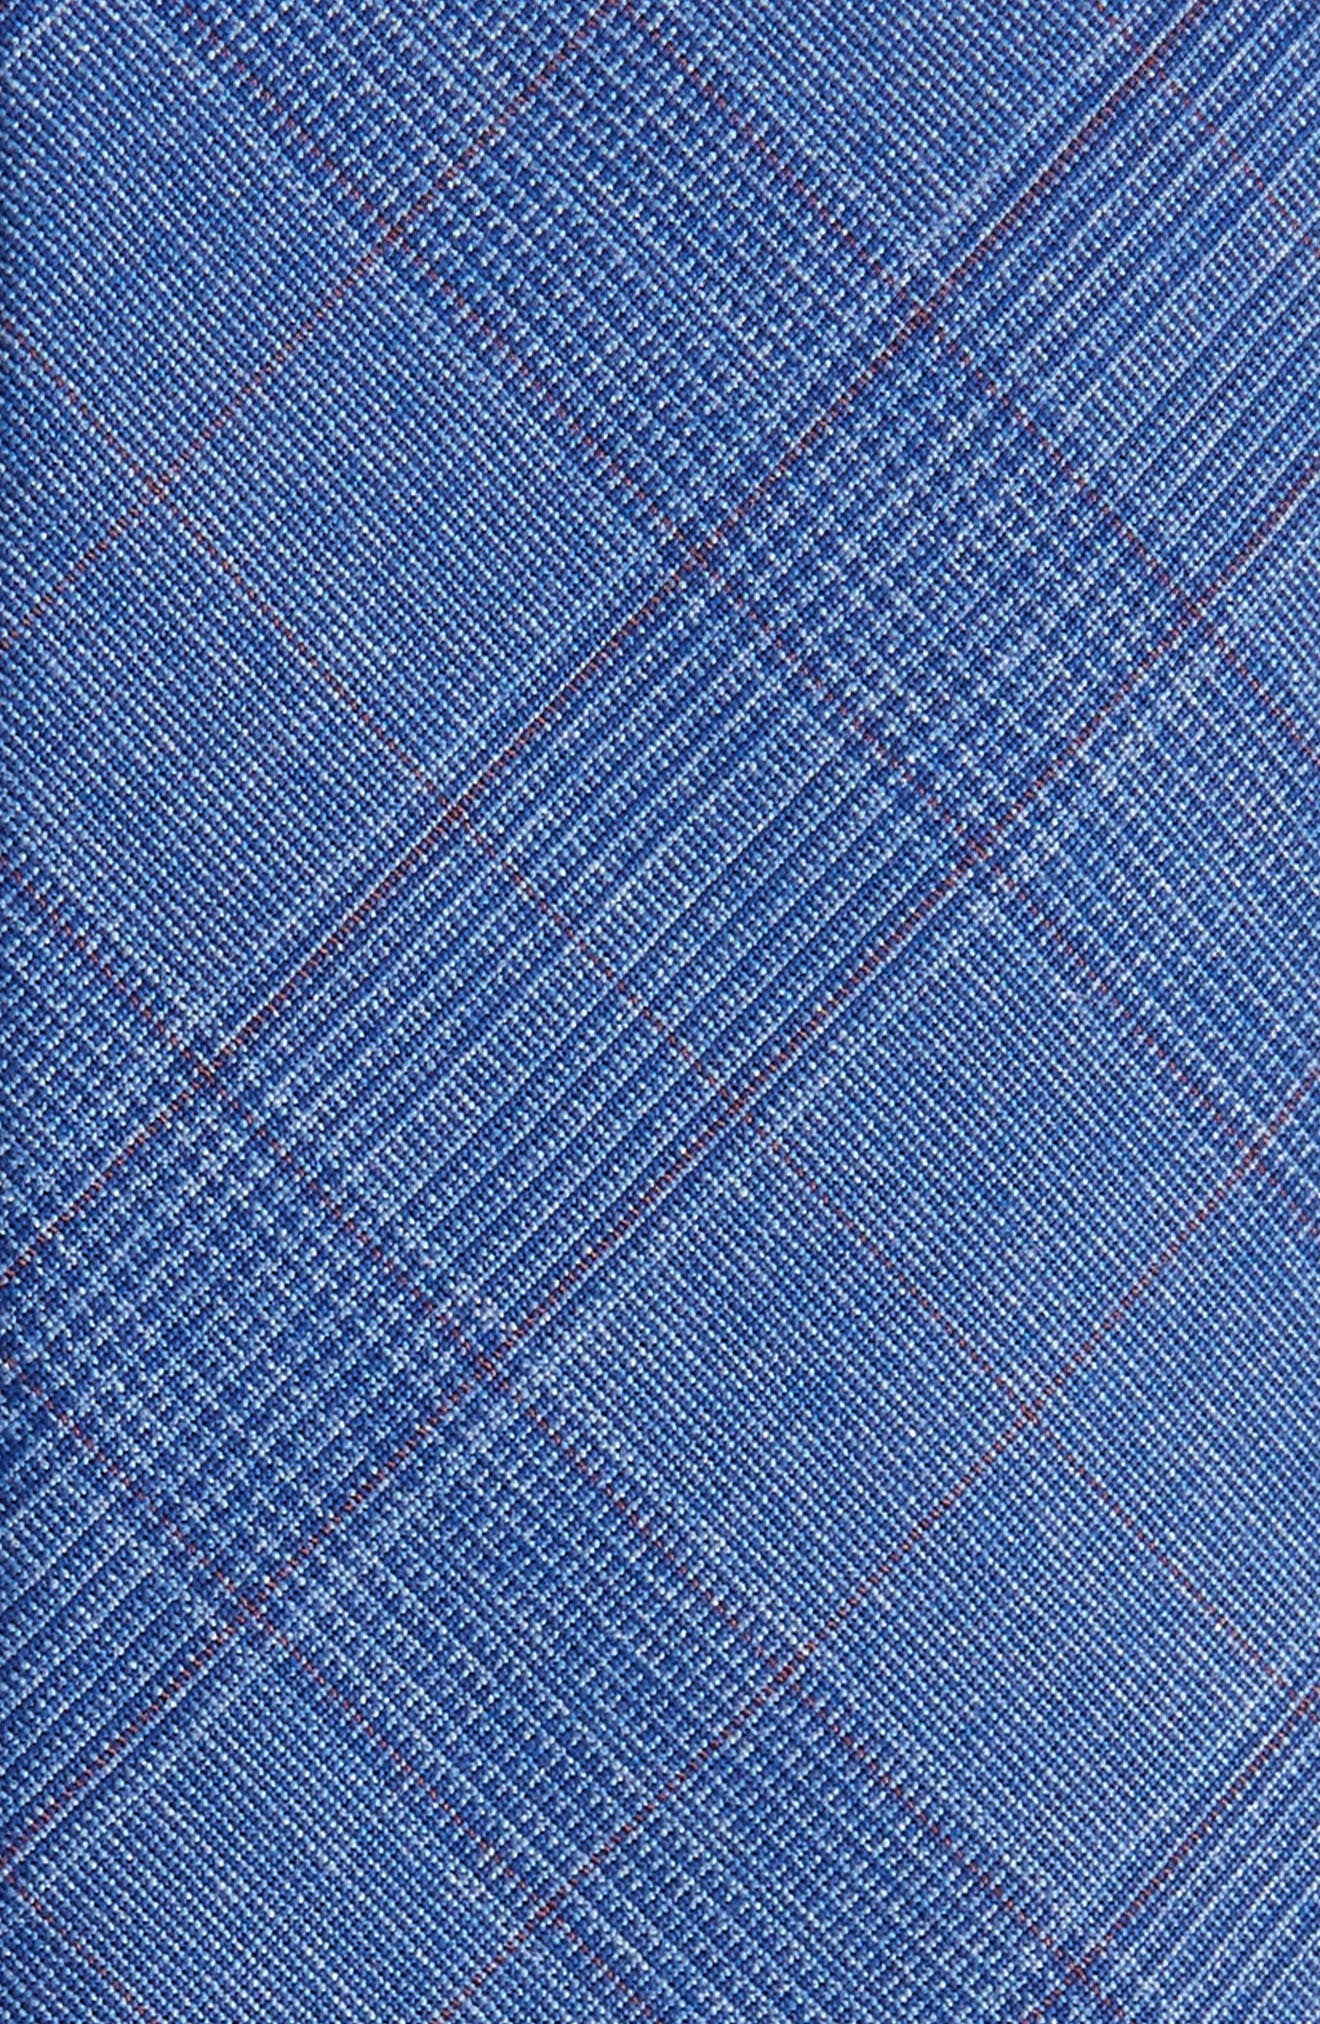 Wheaton Plaid Skinny Tie,                             Alternate thumbnail 2, color,                             410